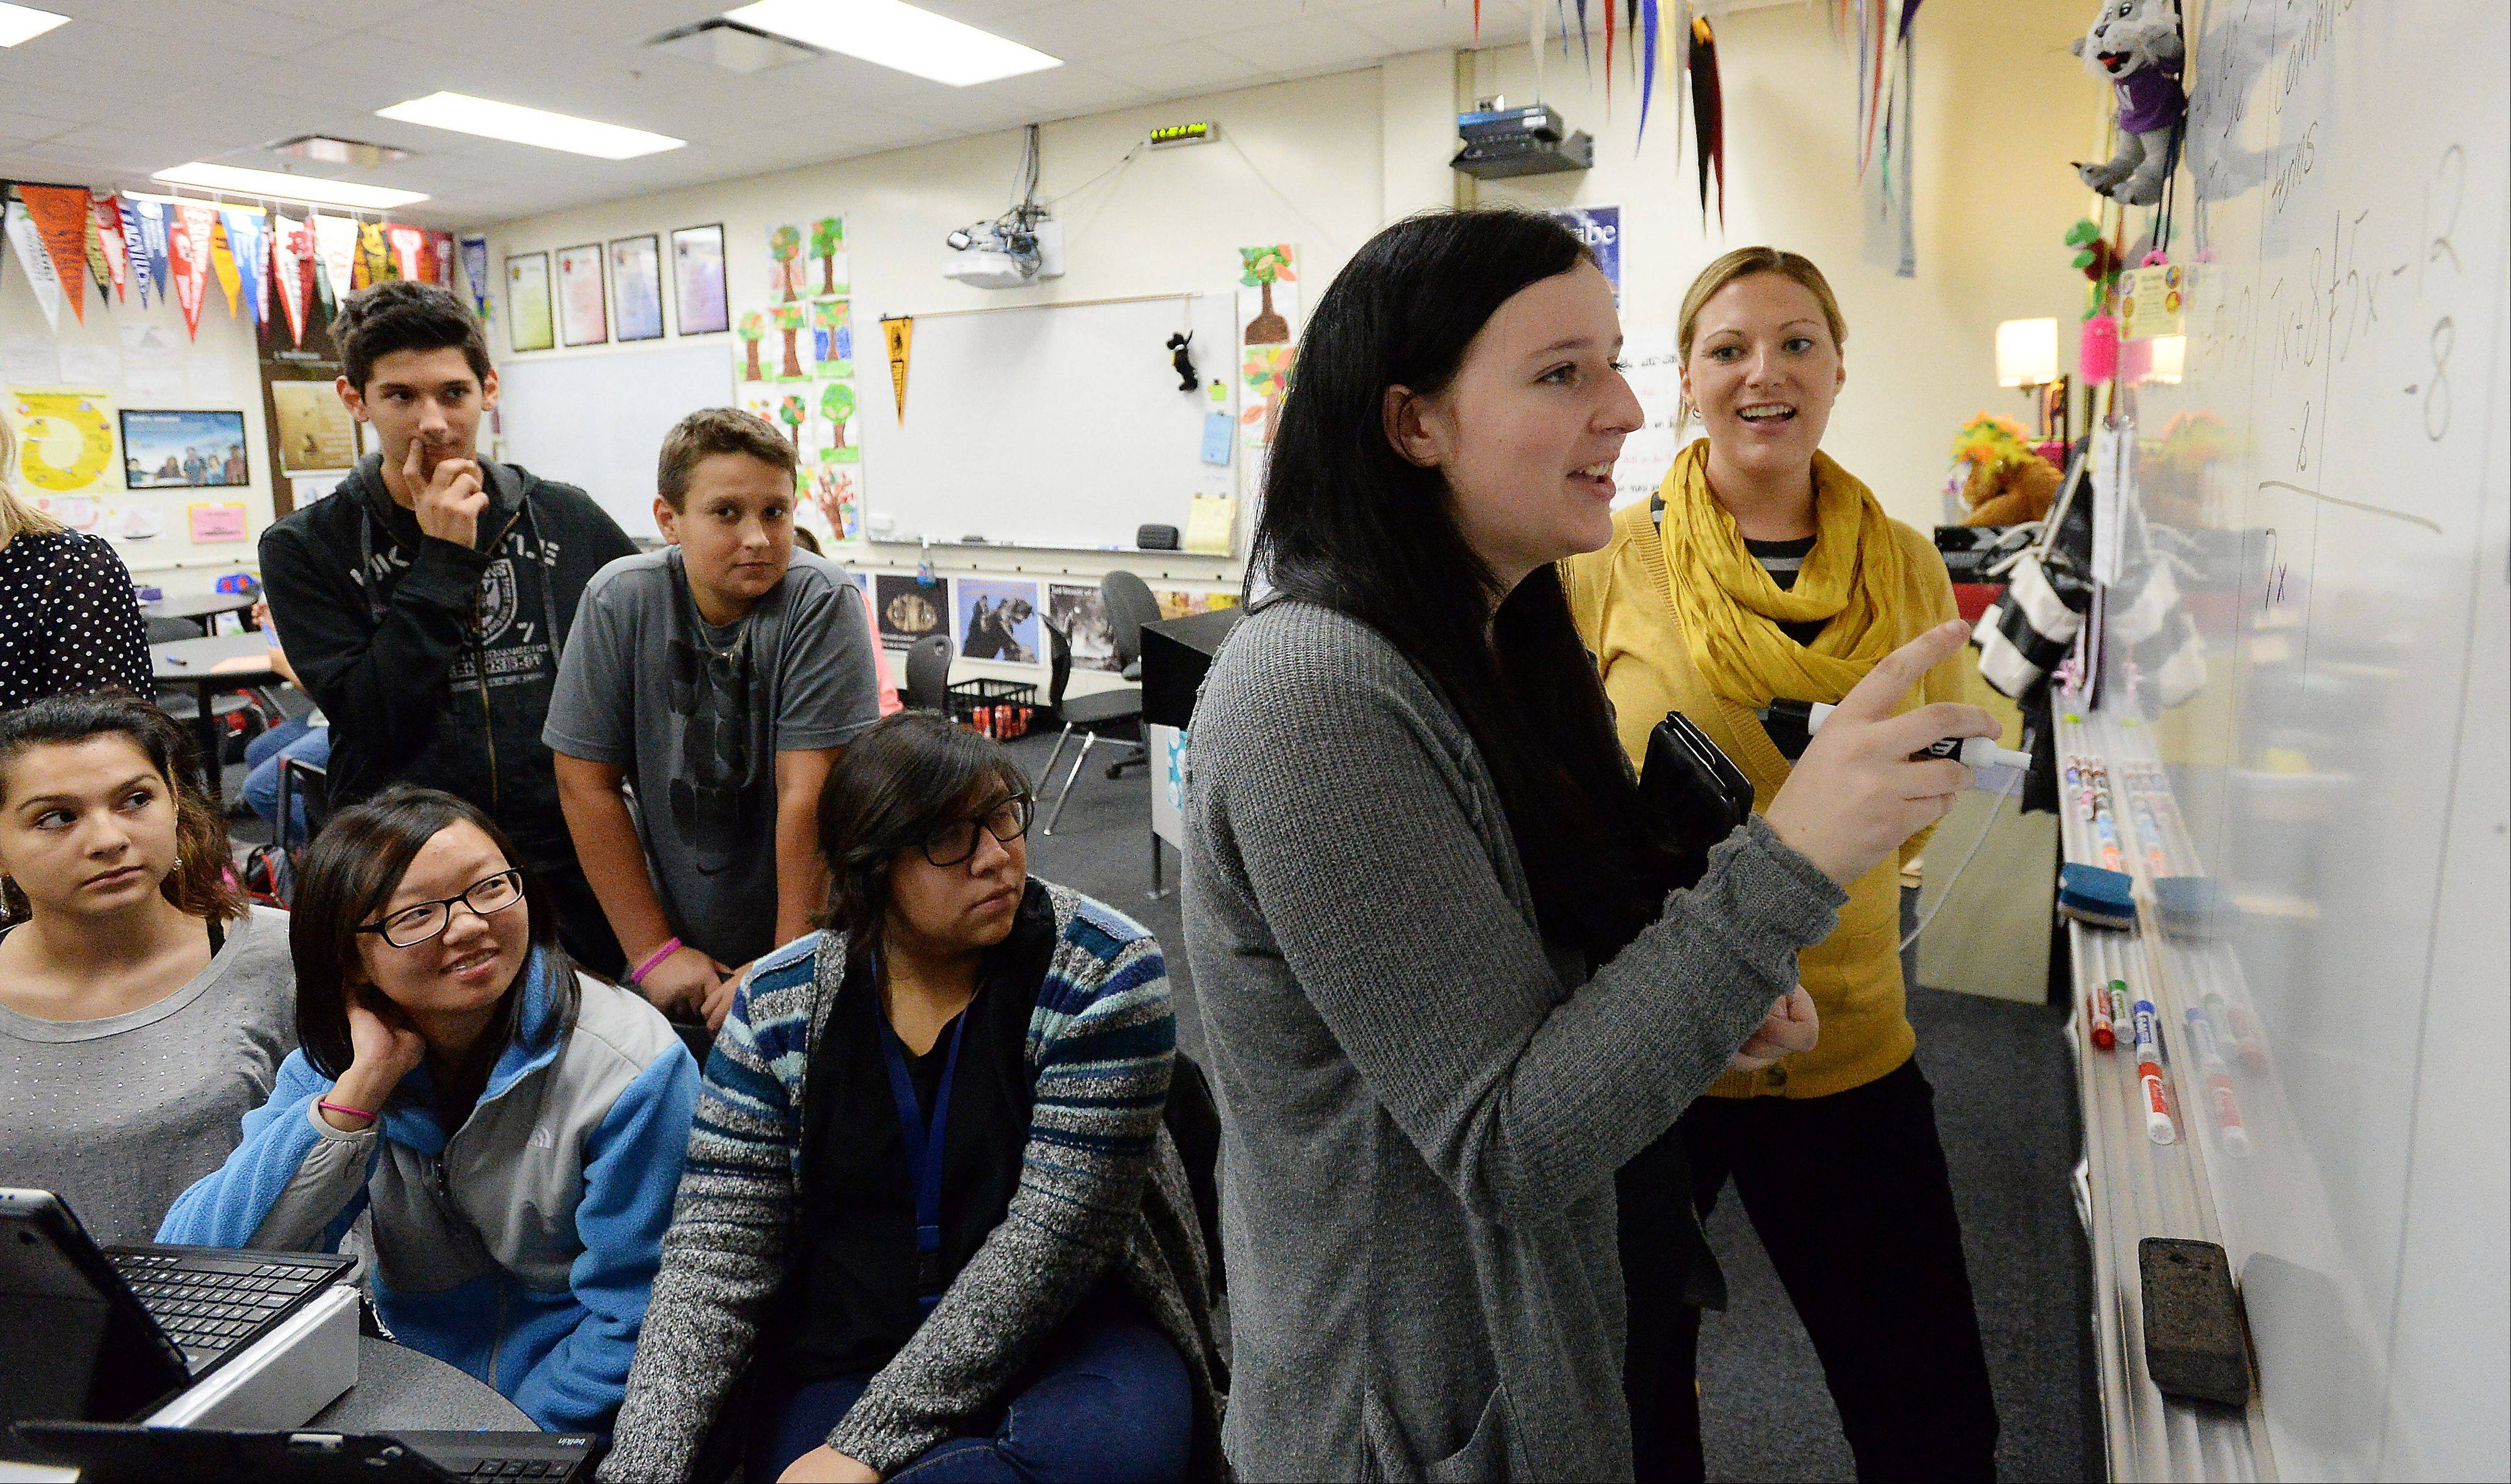 Kennedy Carlson, 15, works with teacher Michelle Marconi in the Advancement Via Individual Determination classroom at Rolling Meadows High School. The class gives extra help to students who would be the first in the family to go to college.